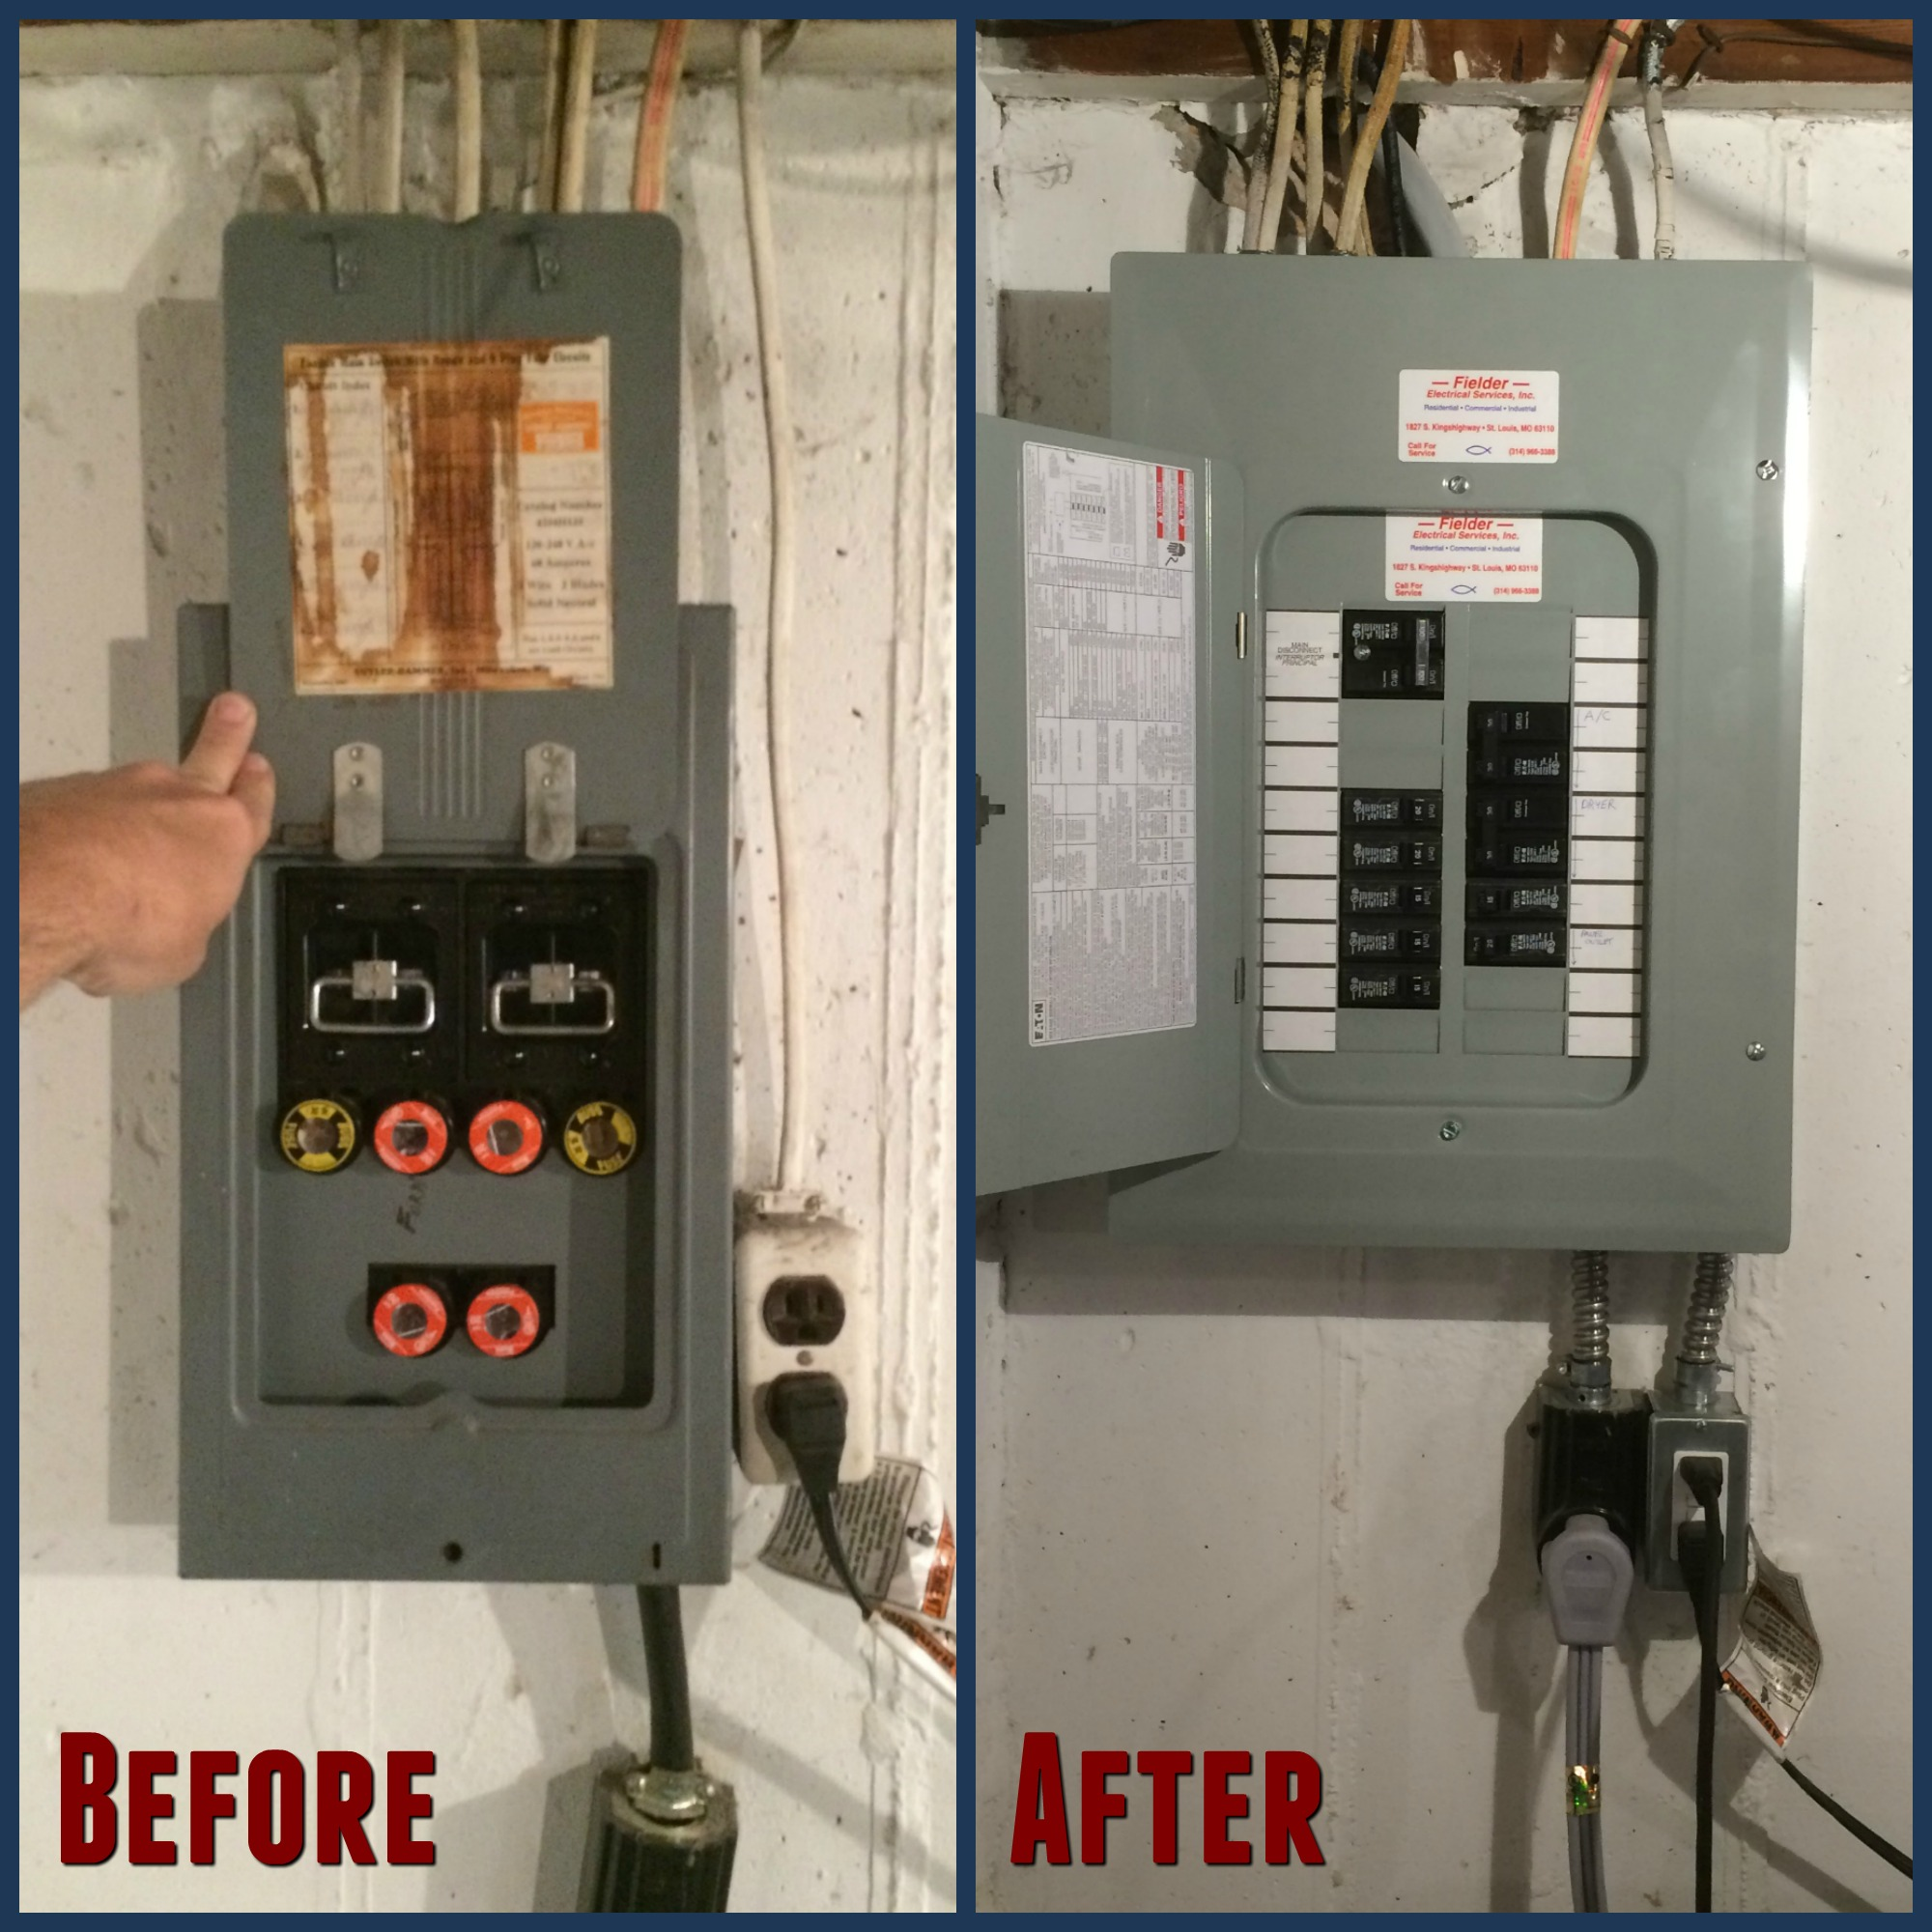 ... electrical service. fuse box to electric panel